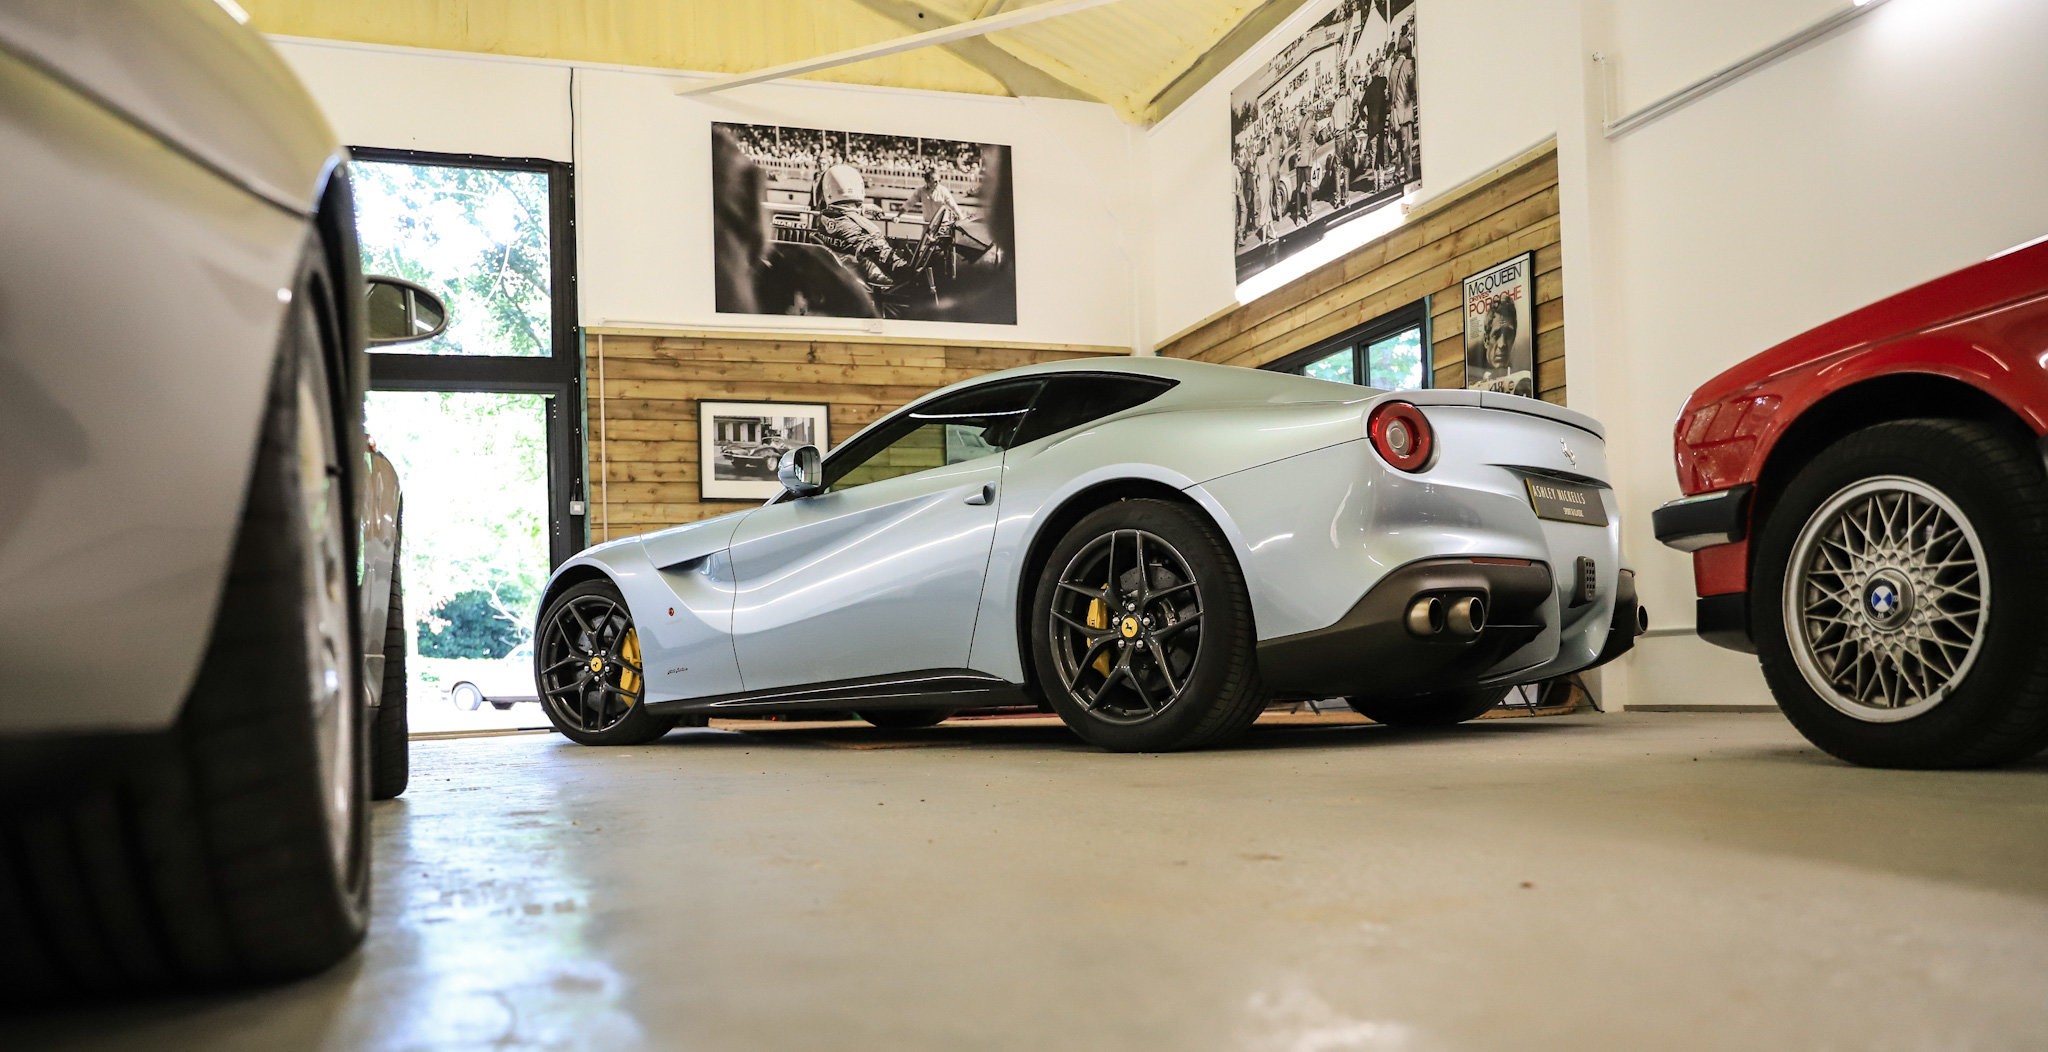 2013 STRIKING F12 - 2 OWNERS - EXTENDED WARRANTY - RECENT SERVICE For Sale (picture 3 of 6)